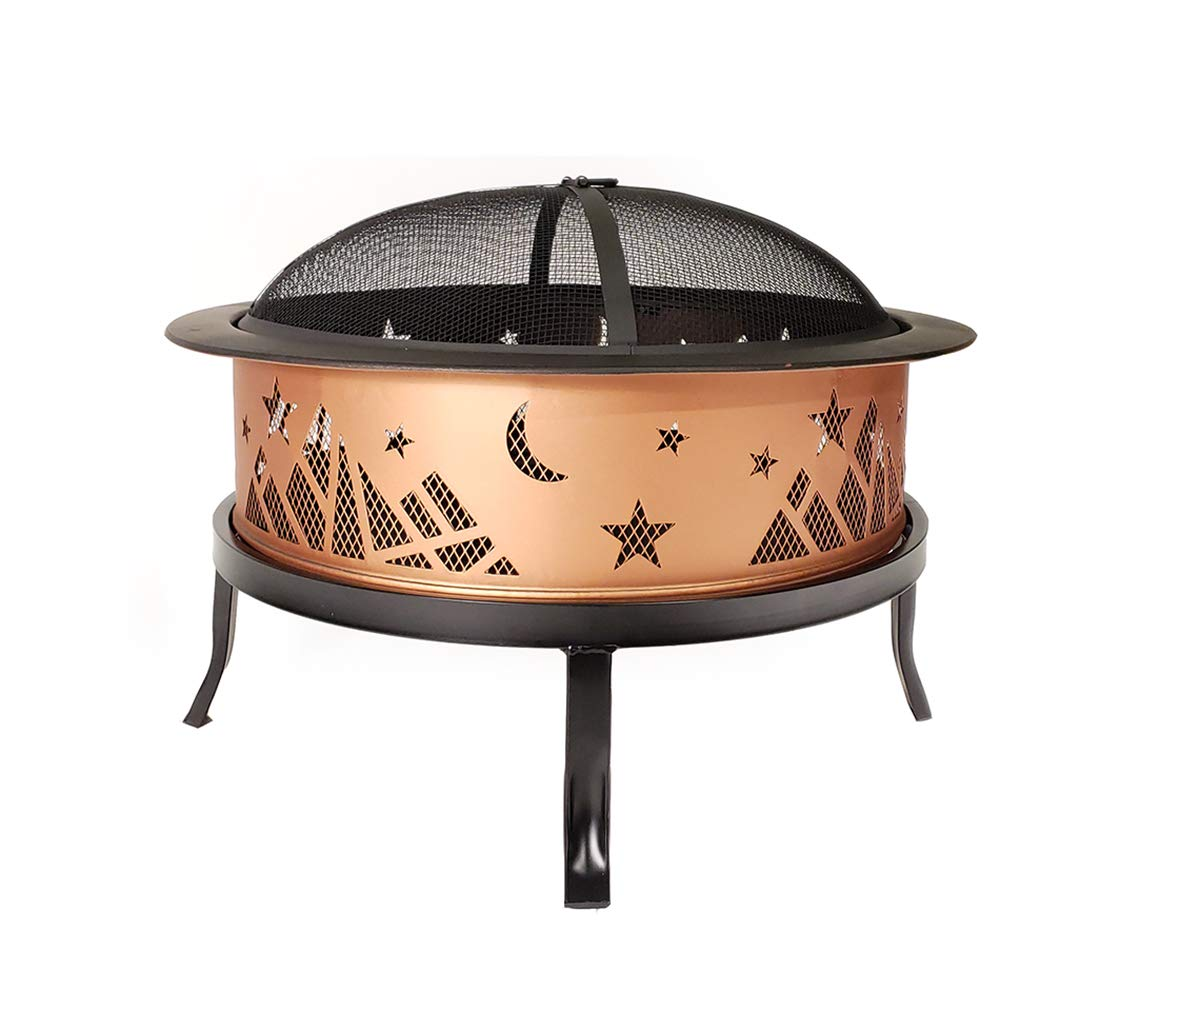 Catalina Creations AD366 26 Round Copper Colored Accented Cauldron, Black